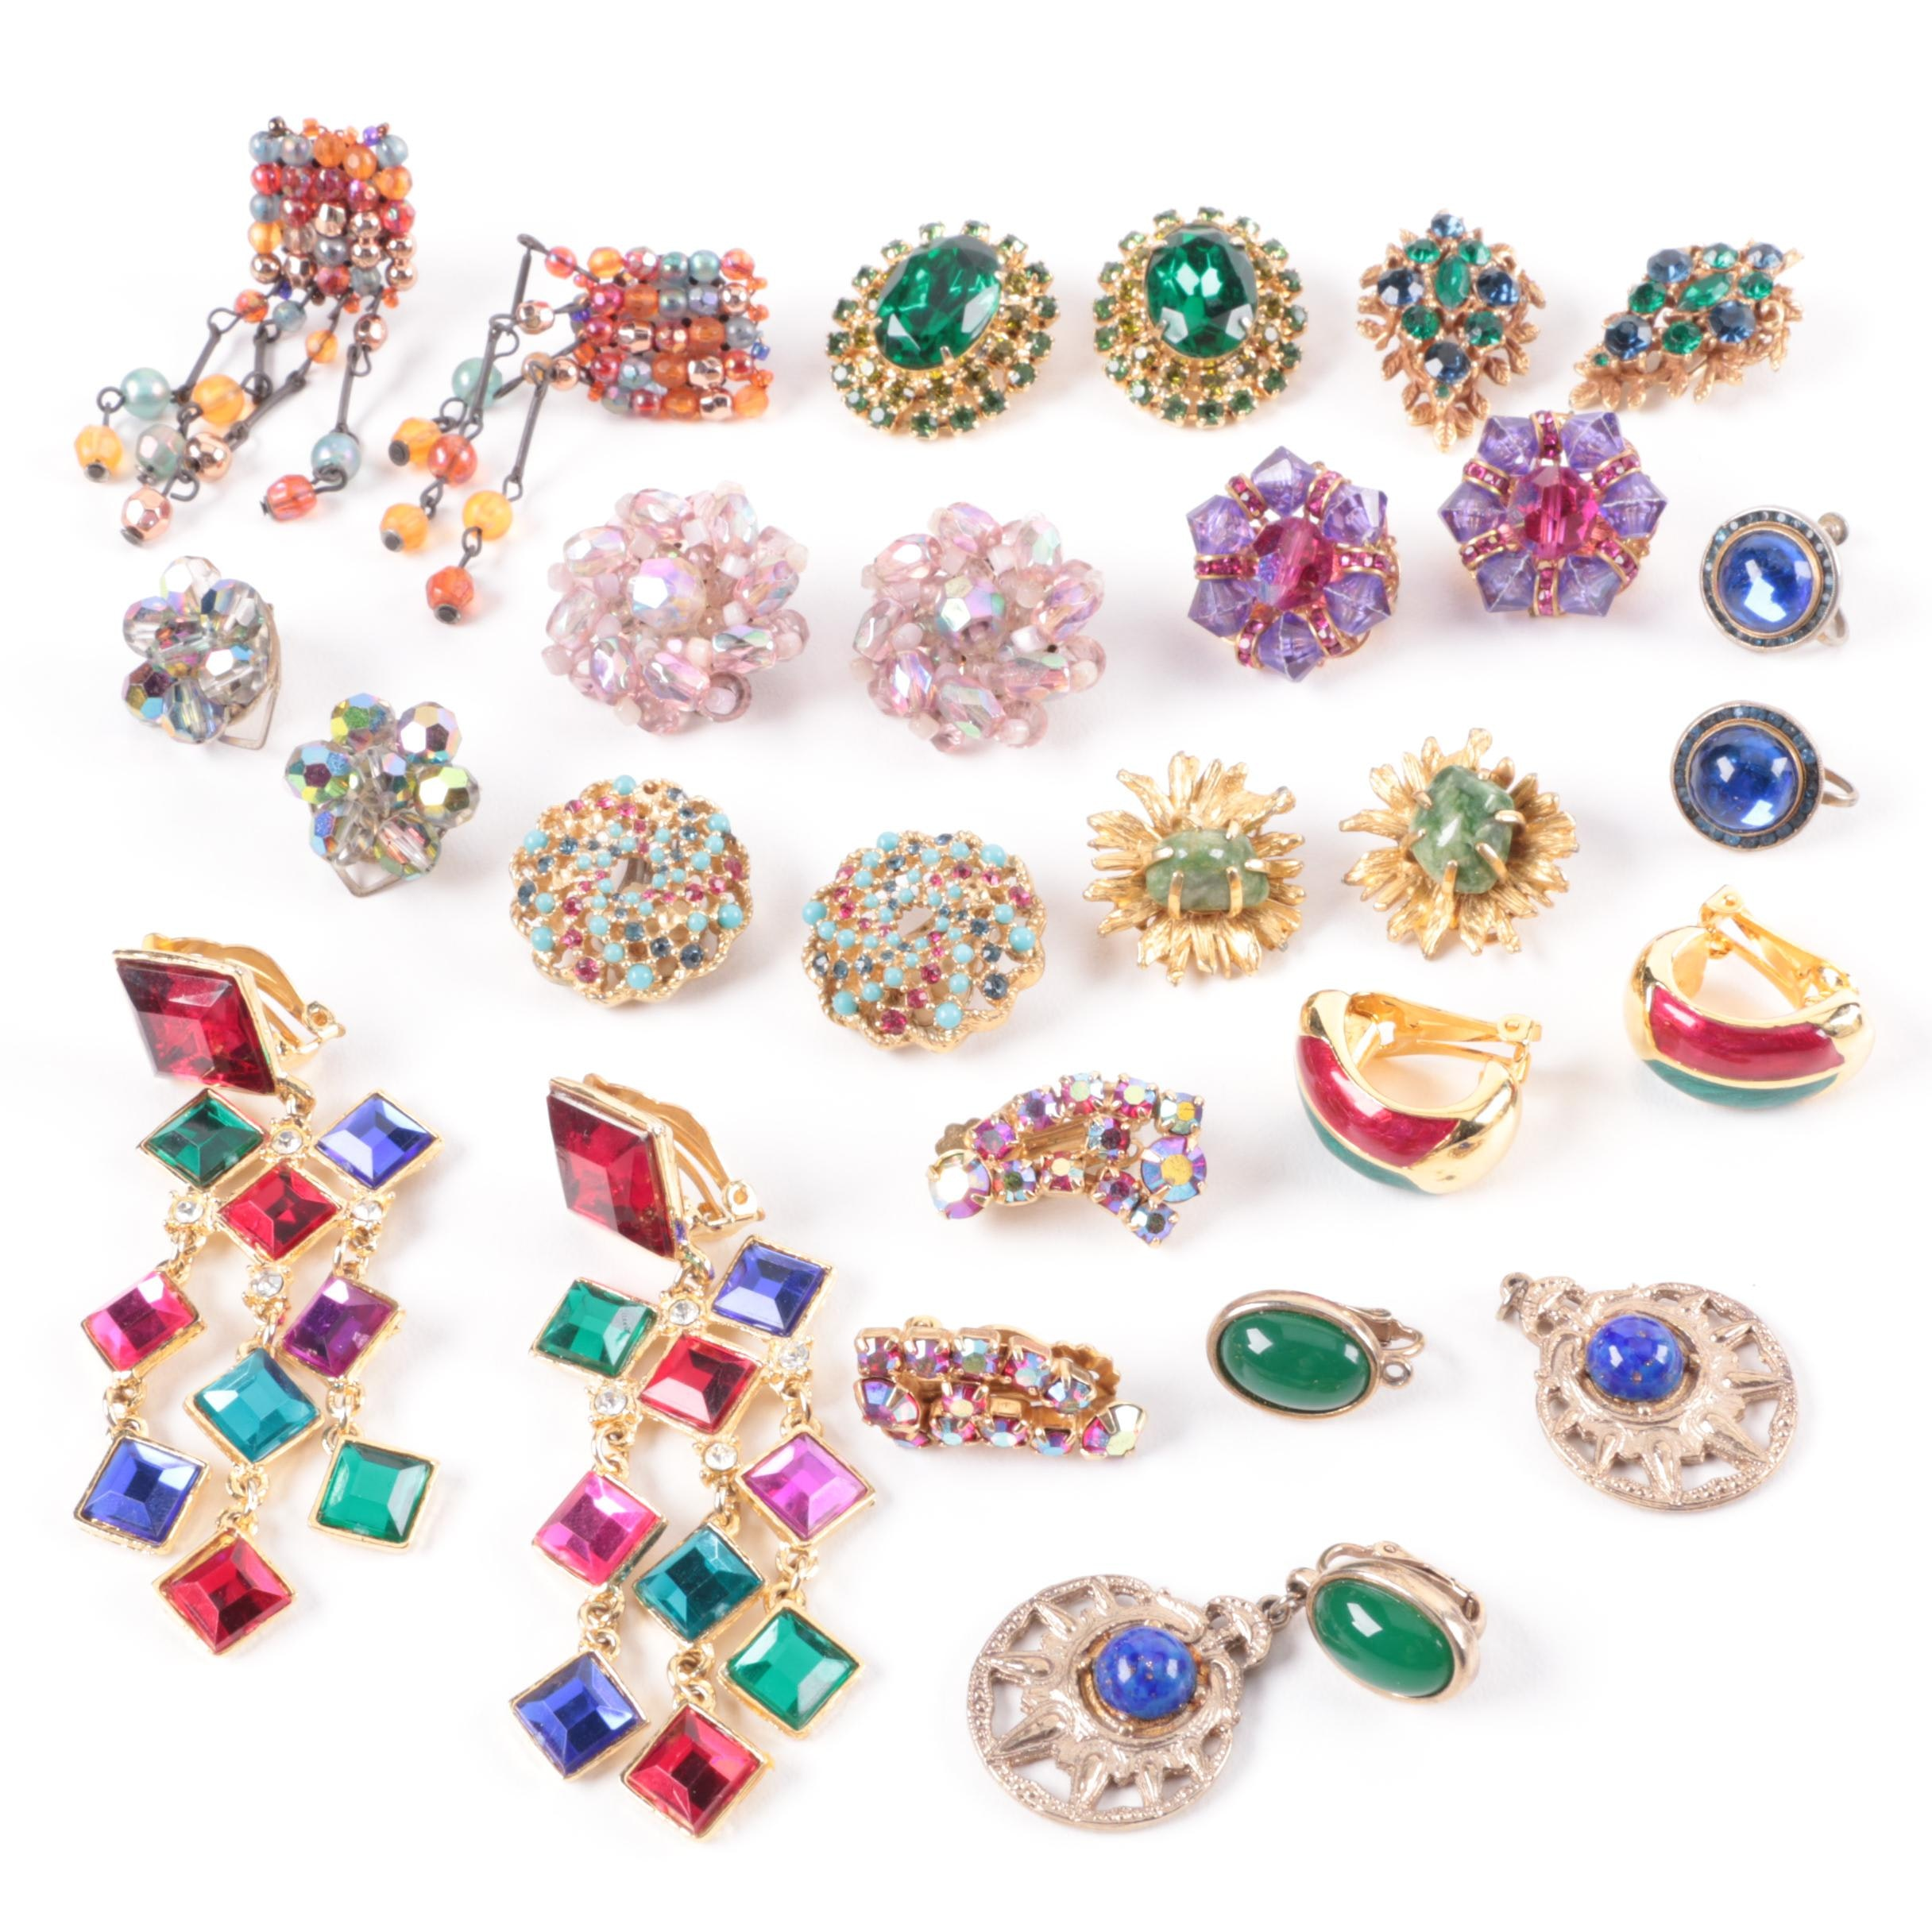 Colorful Earring Assortment Including BSK, Coro and Hobe